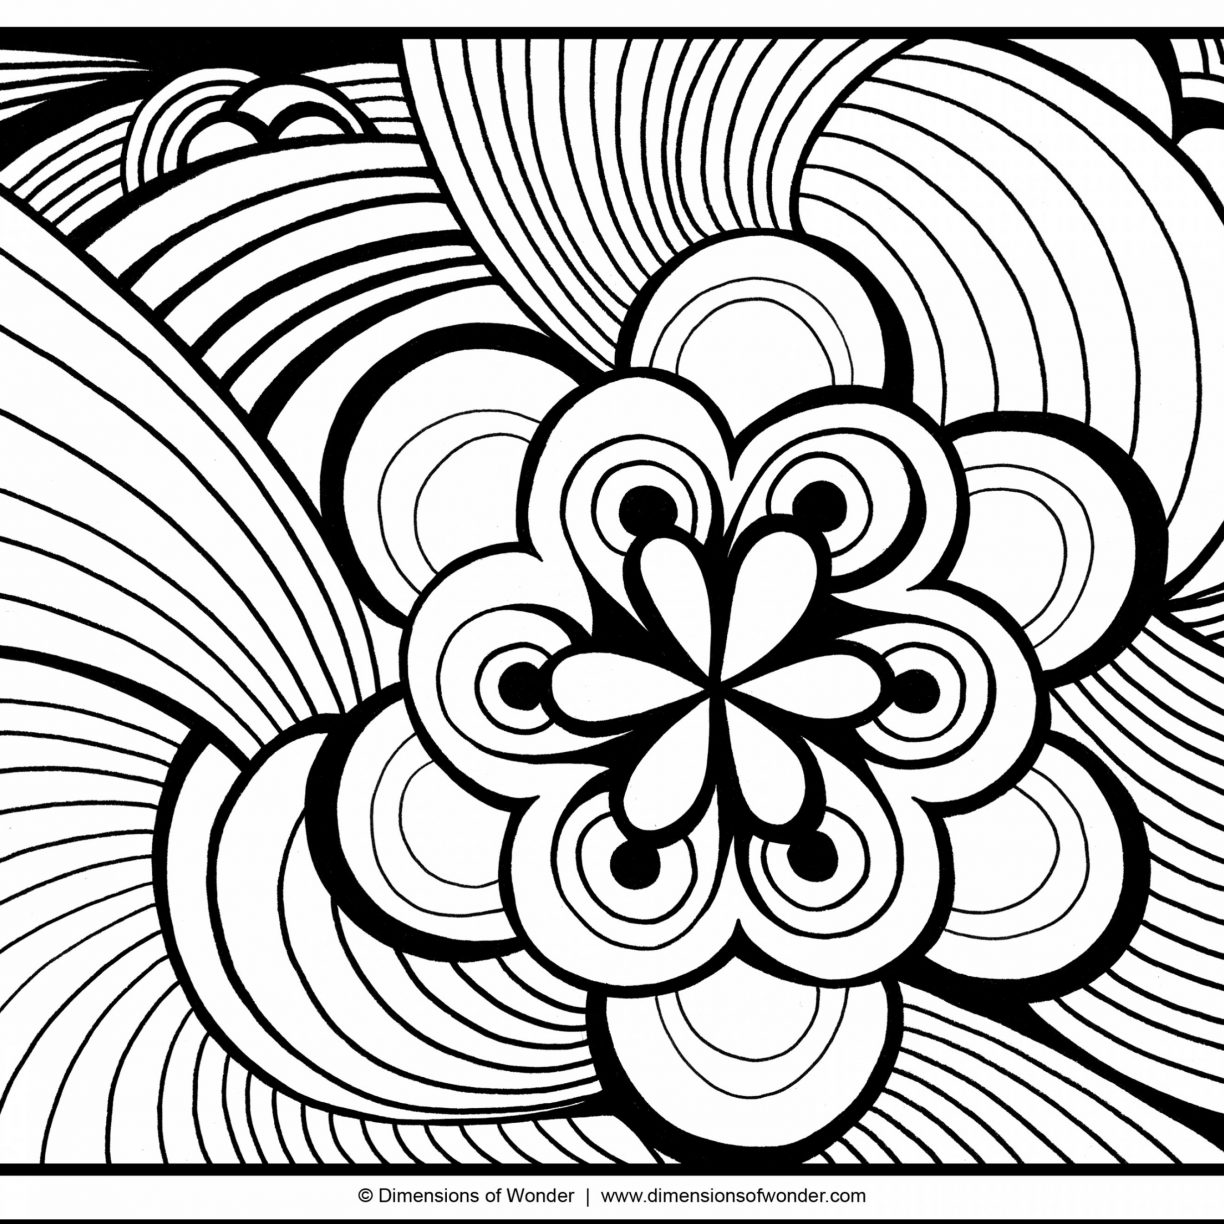 1224x1224 Abstract Coloring Pages You Can Get Art Of Printable Adult Free